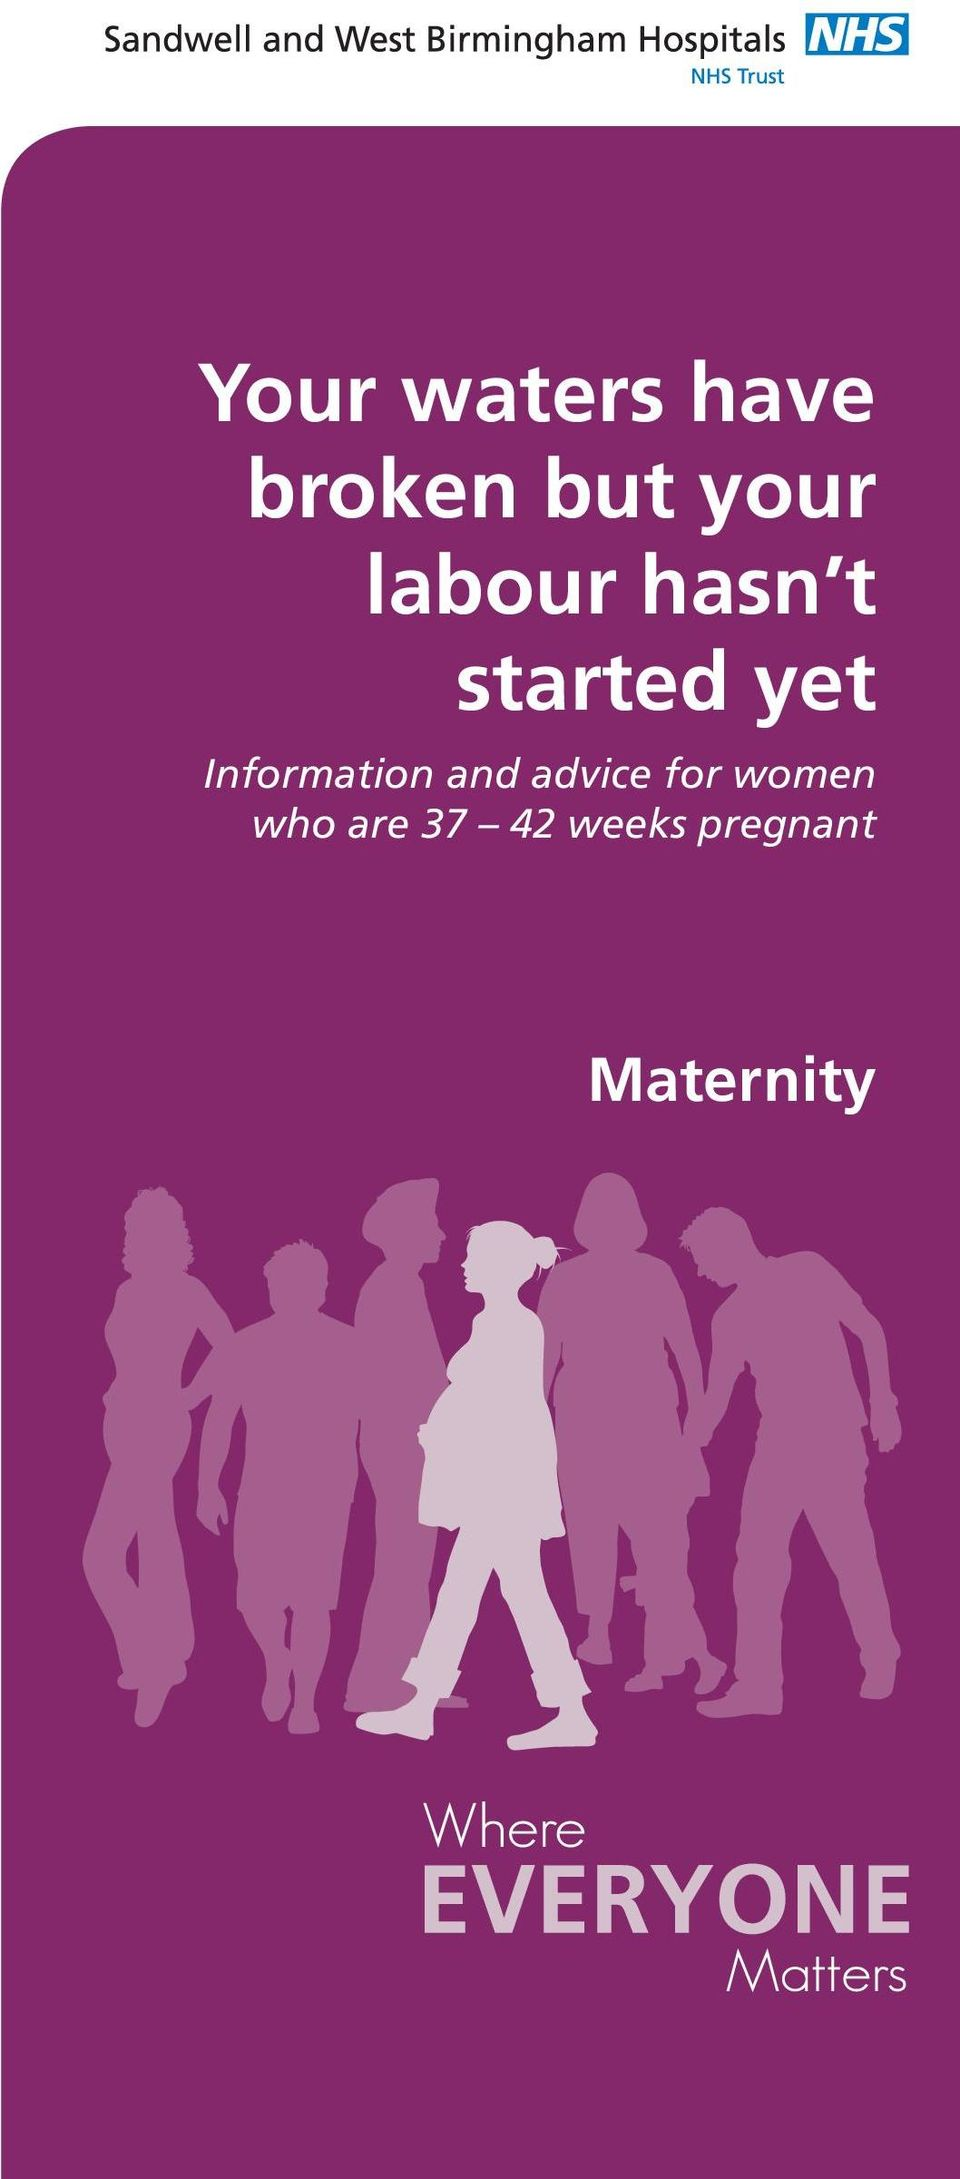 Information and advice for women